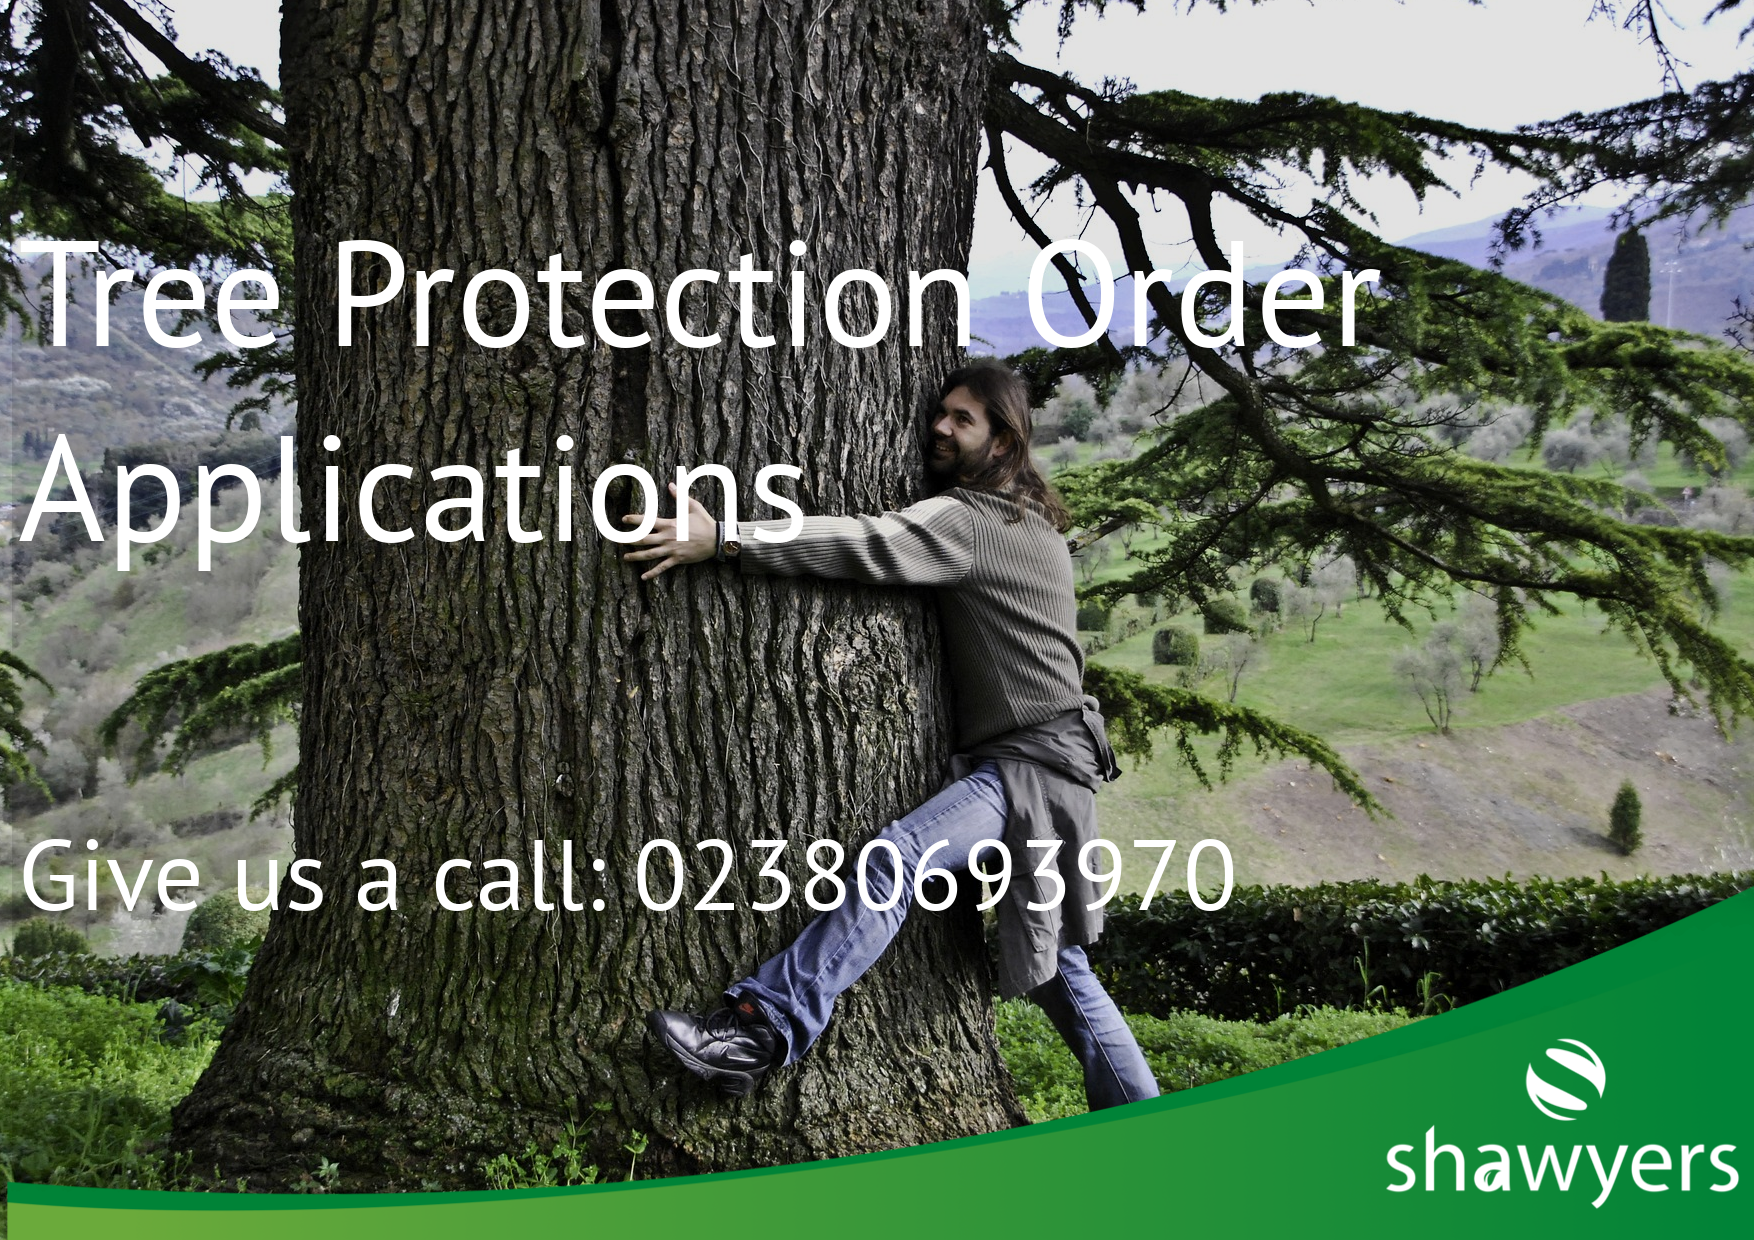 Tree Protection Order